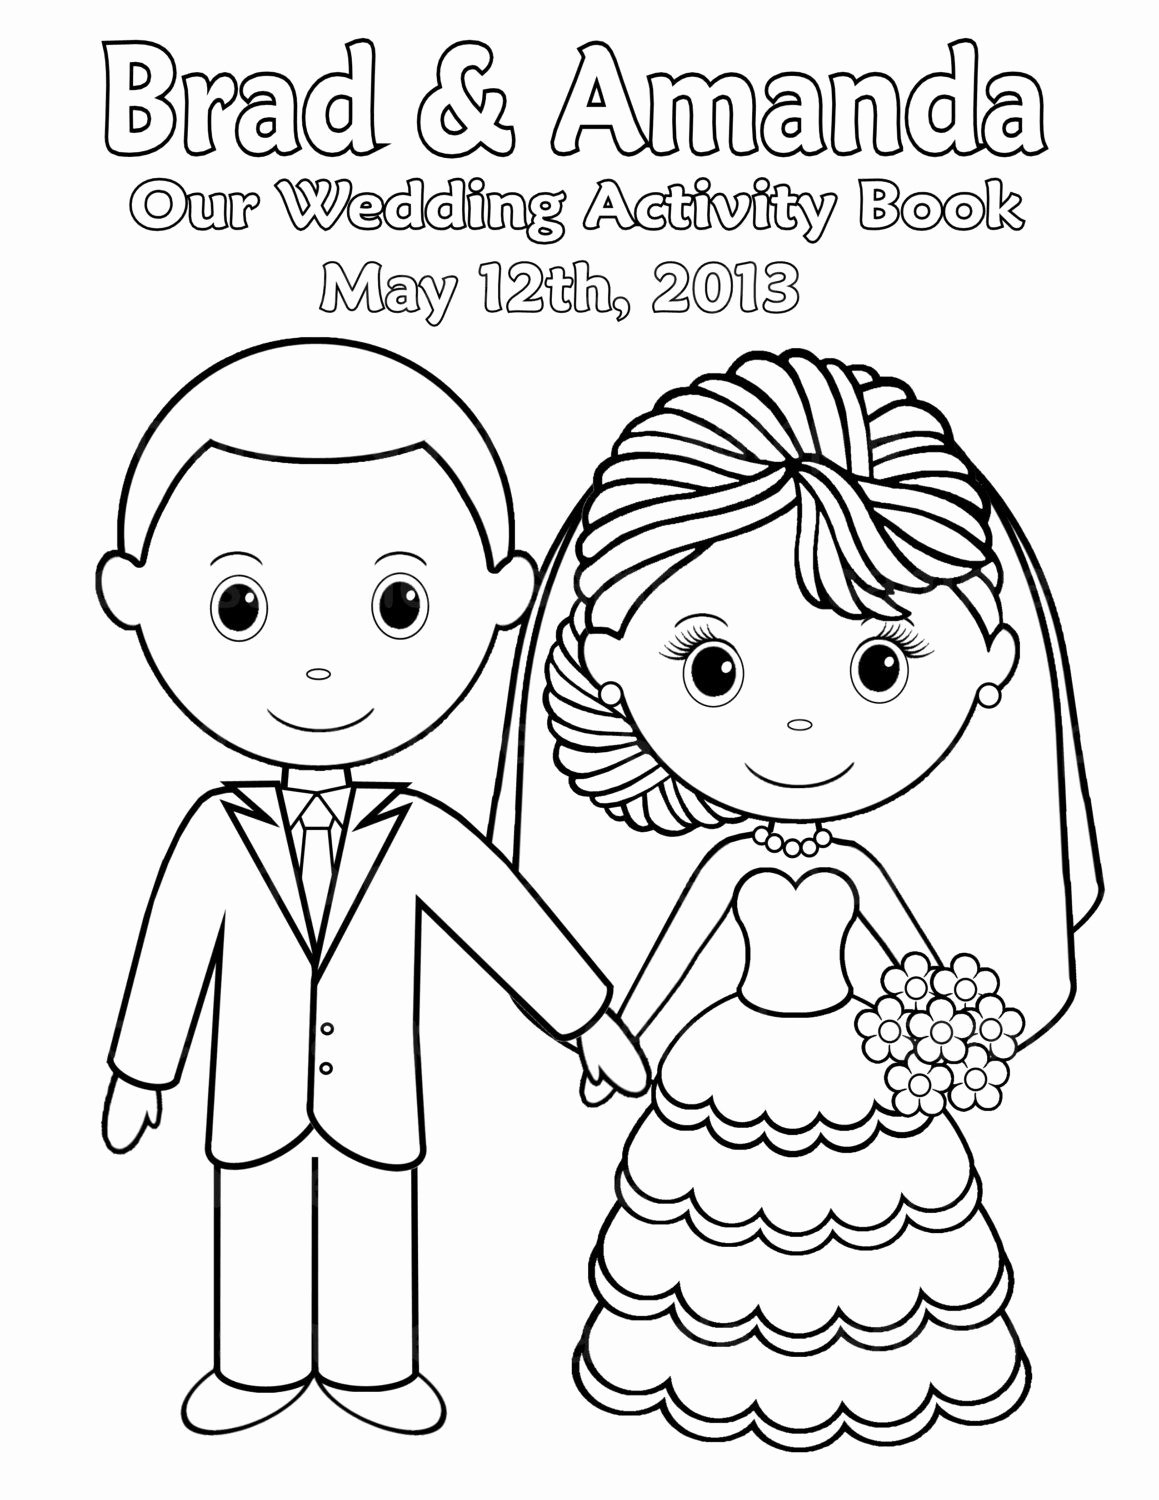 Wedding Coloring Book Templates Unique Printable Personalized Wedding Coloring Activity Book